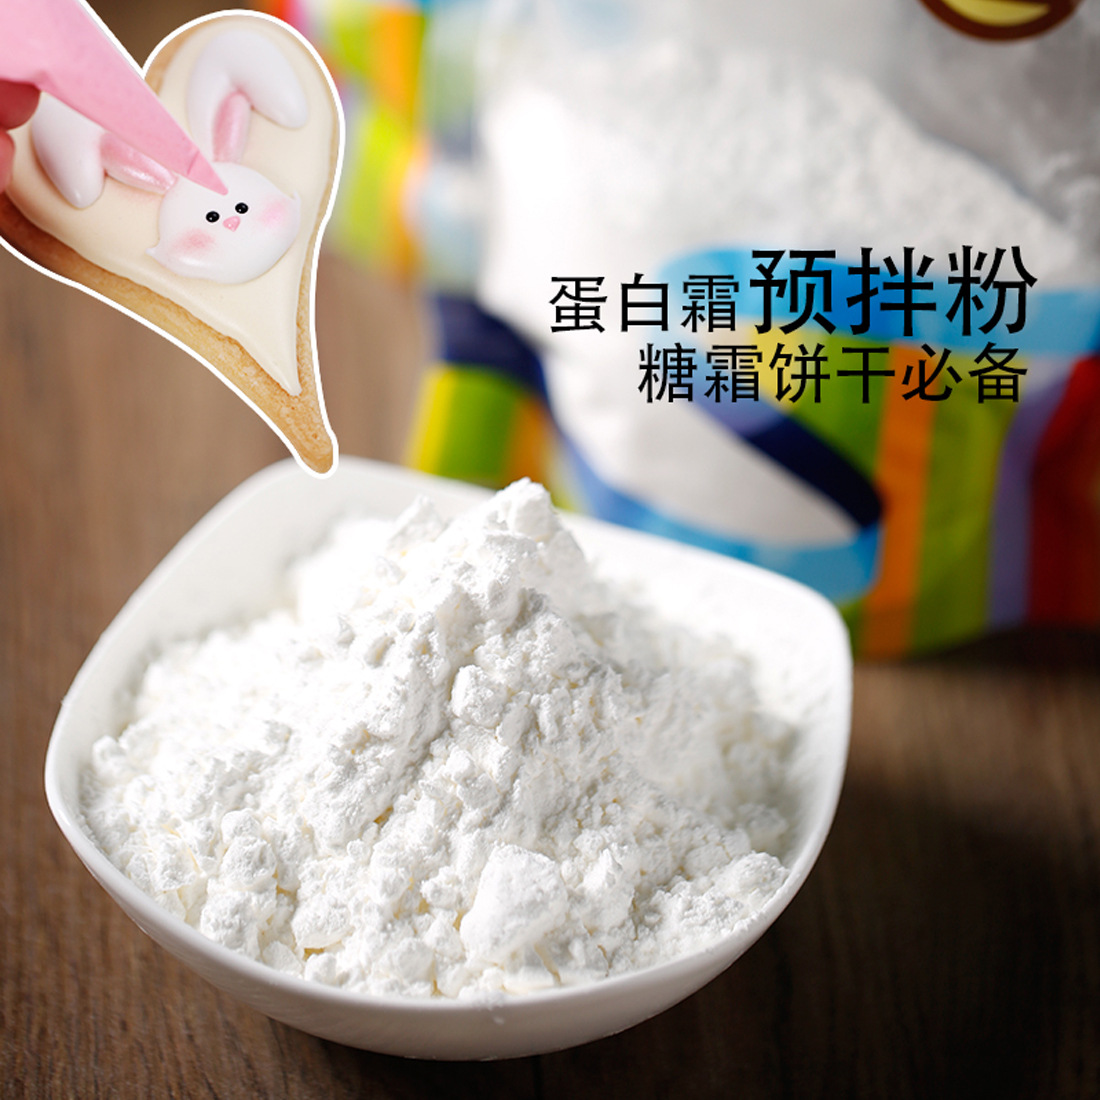 Palo Belle Meringue Protein Powder Frosting Cookie Raw Material Mixes for Making Raw Material 200g-Cheap Wholesale image